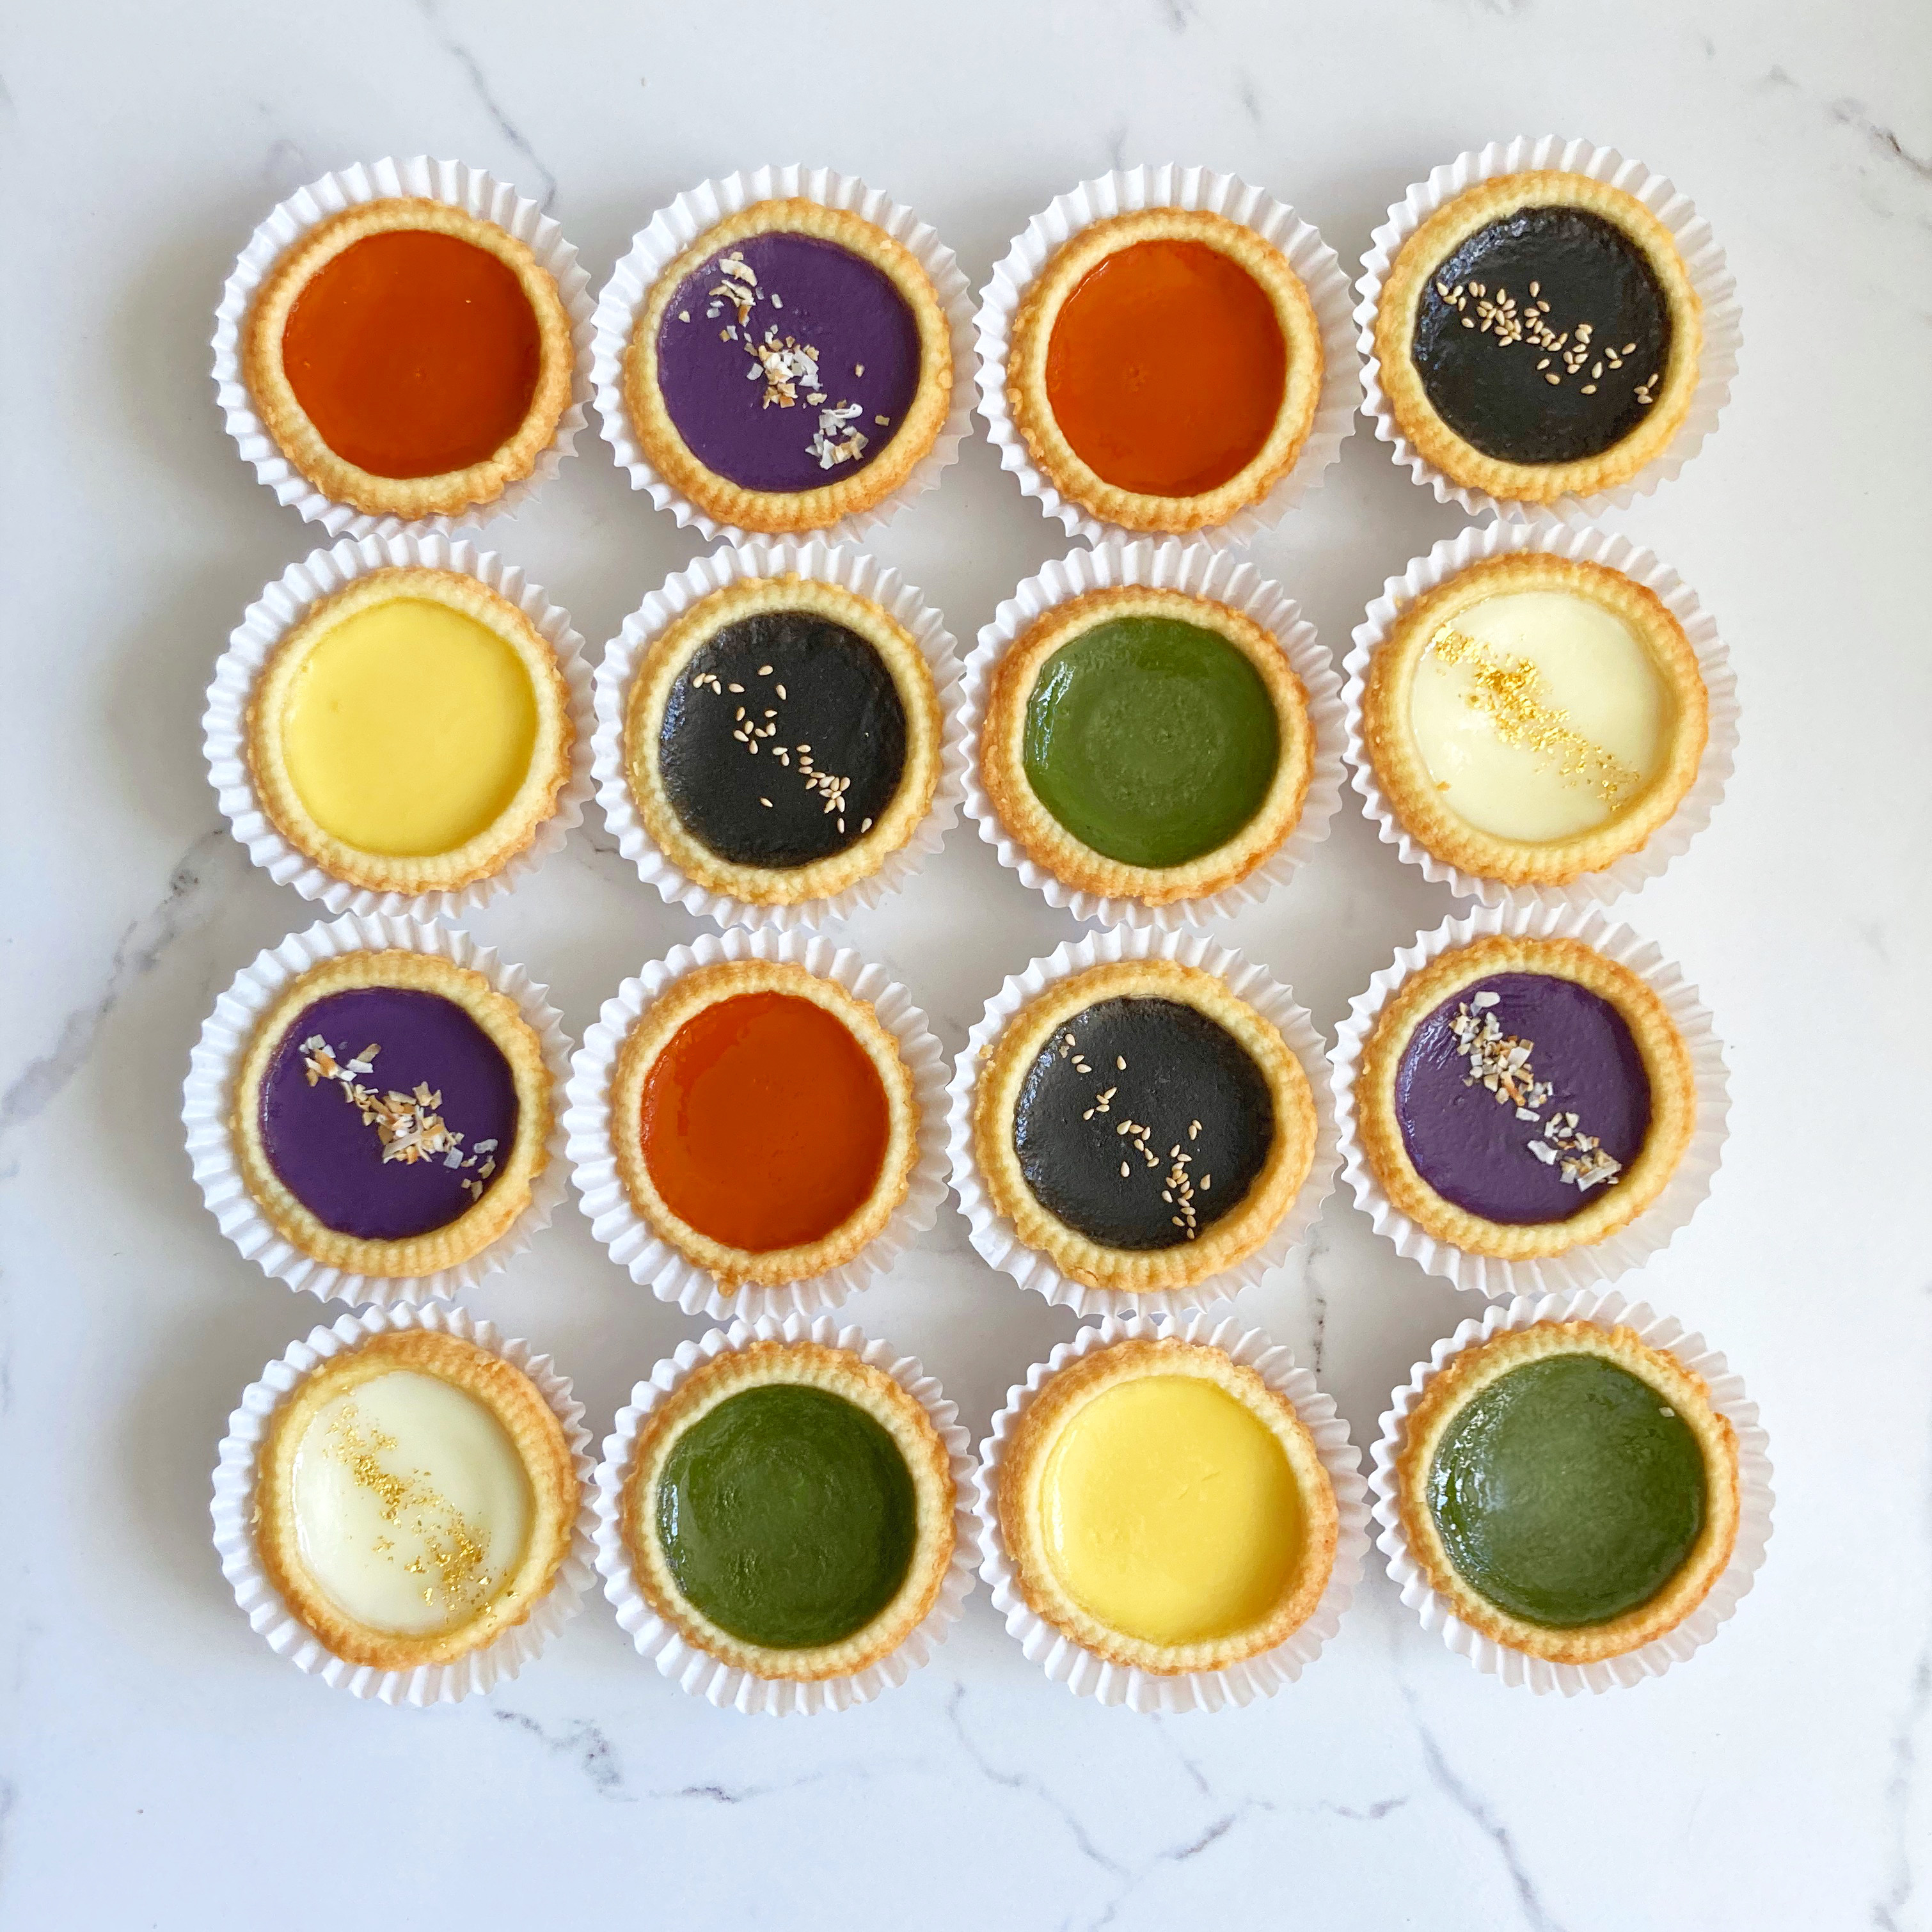 Dan tat or Hong Kong-style egg tarts in various flavors like almond jello, matcha, and ube from Spoons Patisserie in Los Angeles and San Francisco.